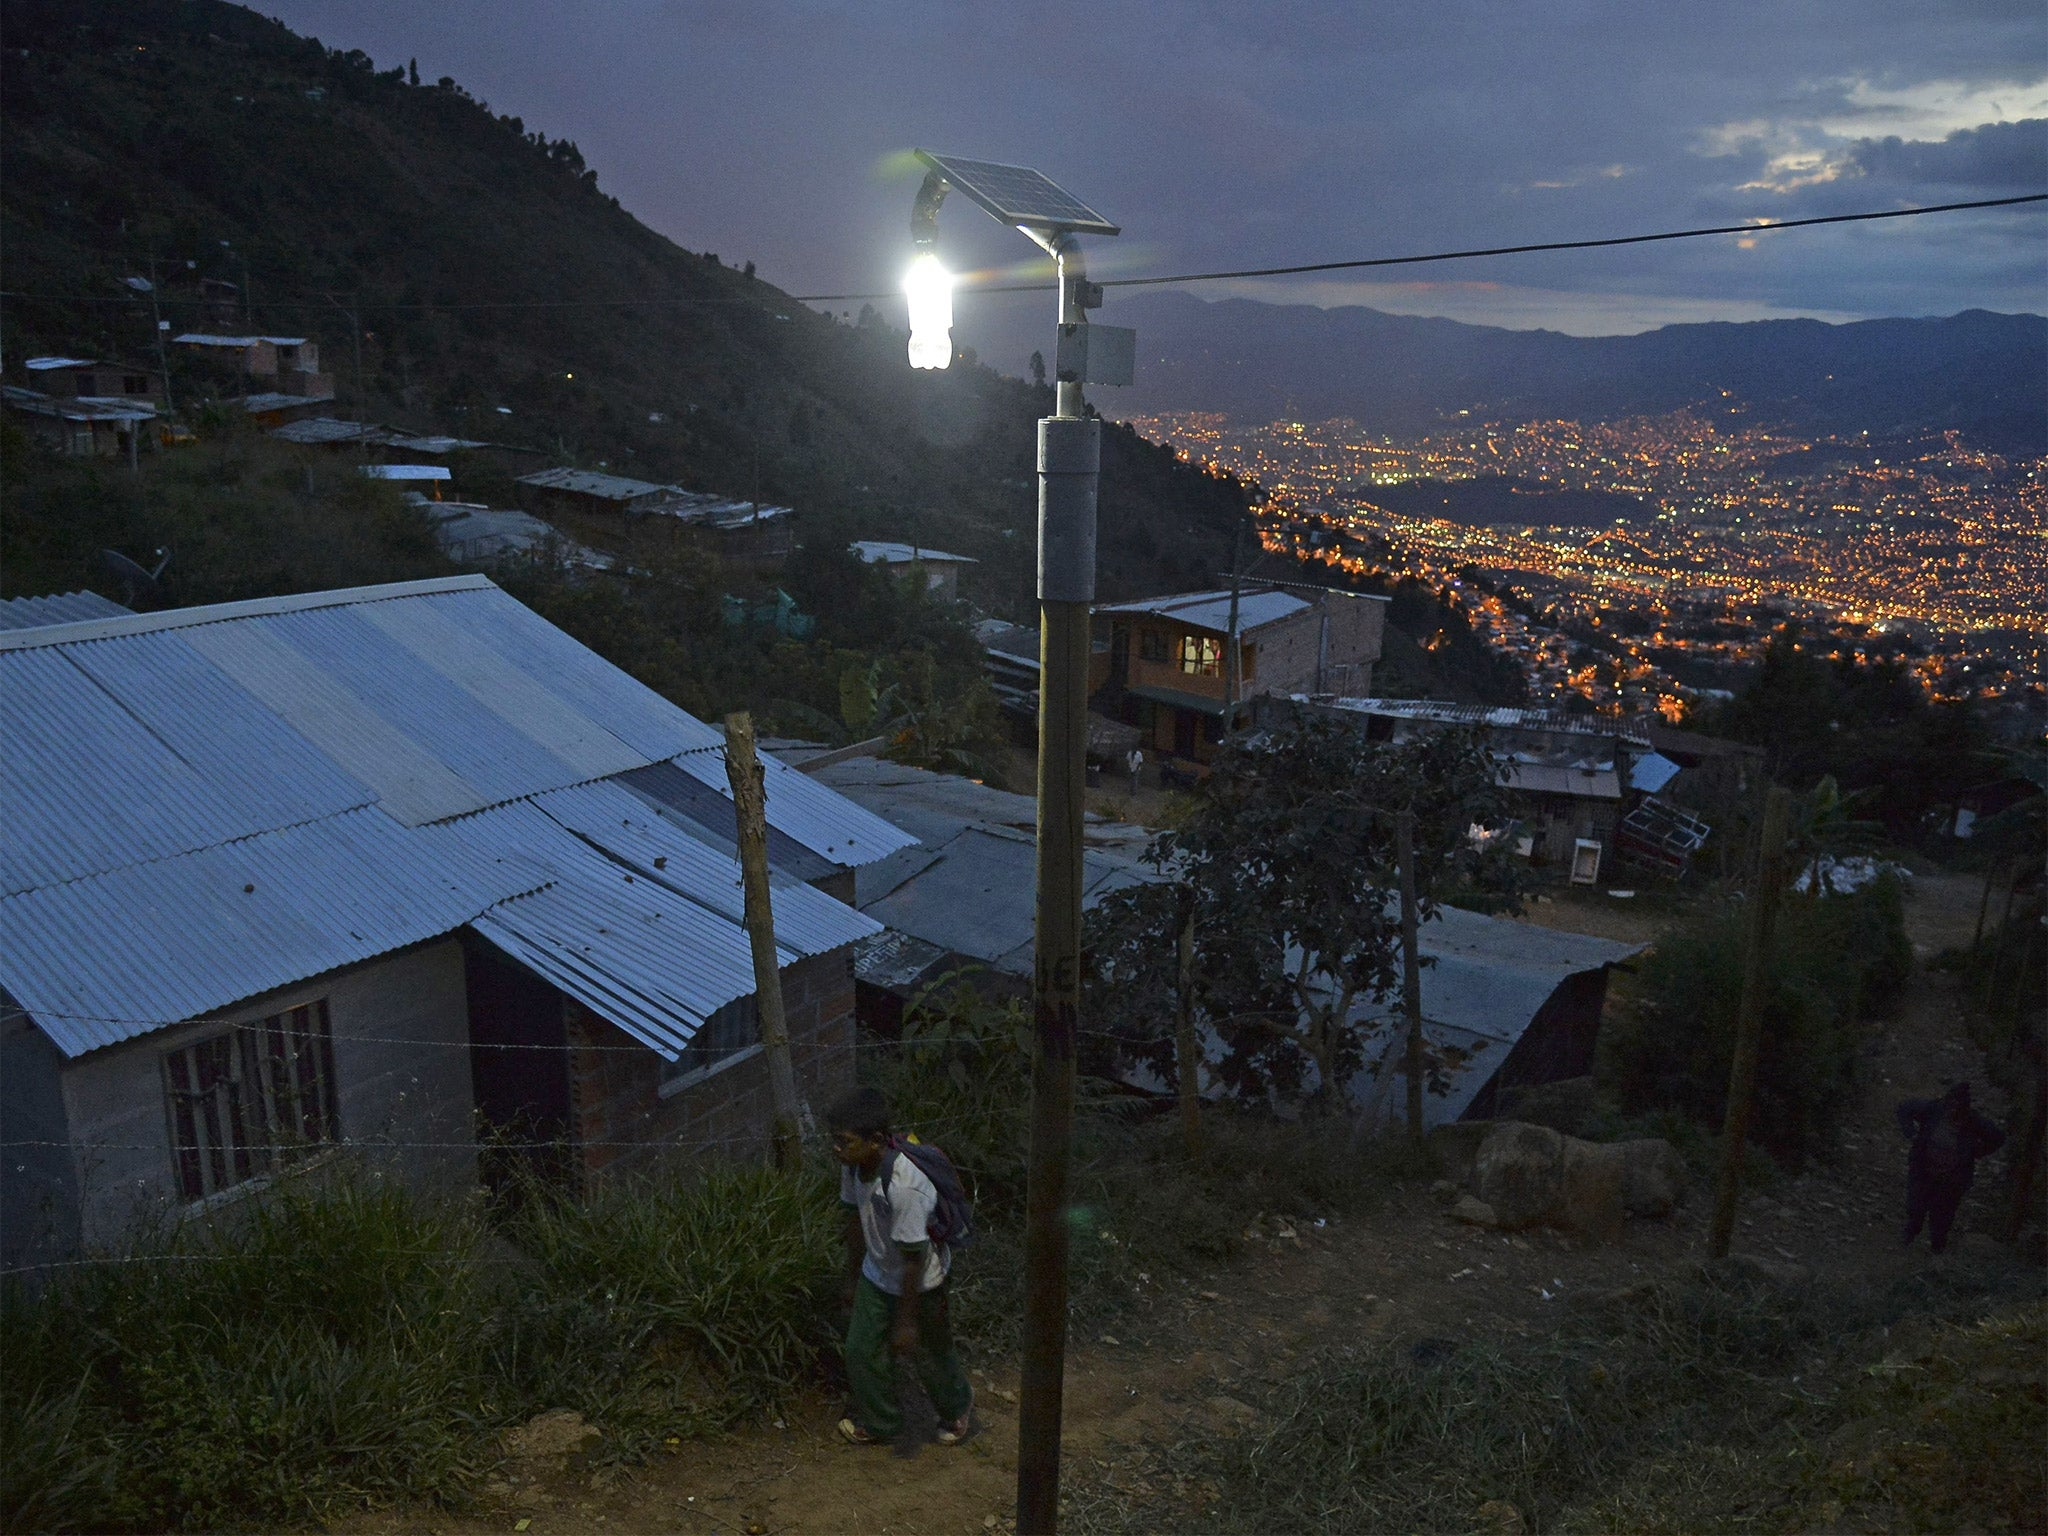 Liter Of Lights Solar Powered Diy Lamp Made From A Plastic Bottle Couk O View Topic Led Stair Require Wiring In Series Is Transforming Lives The Independent